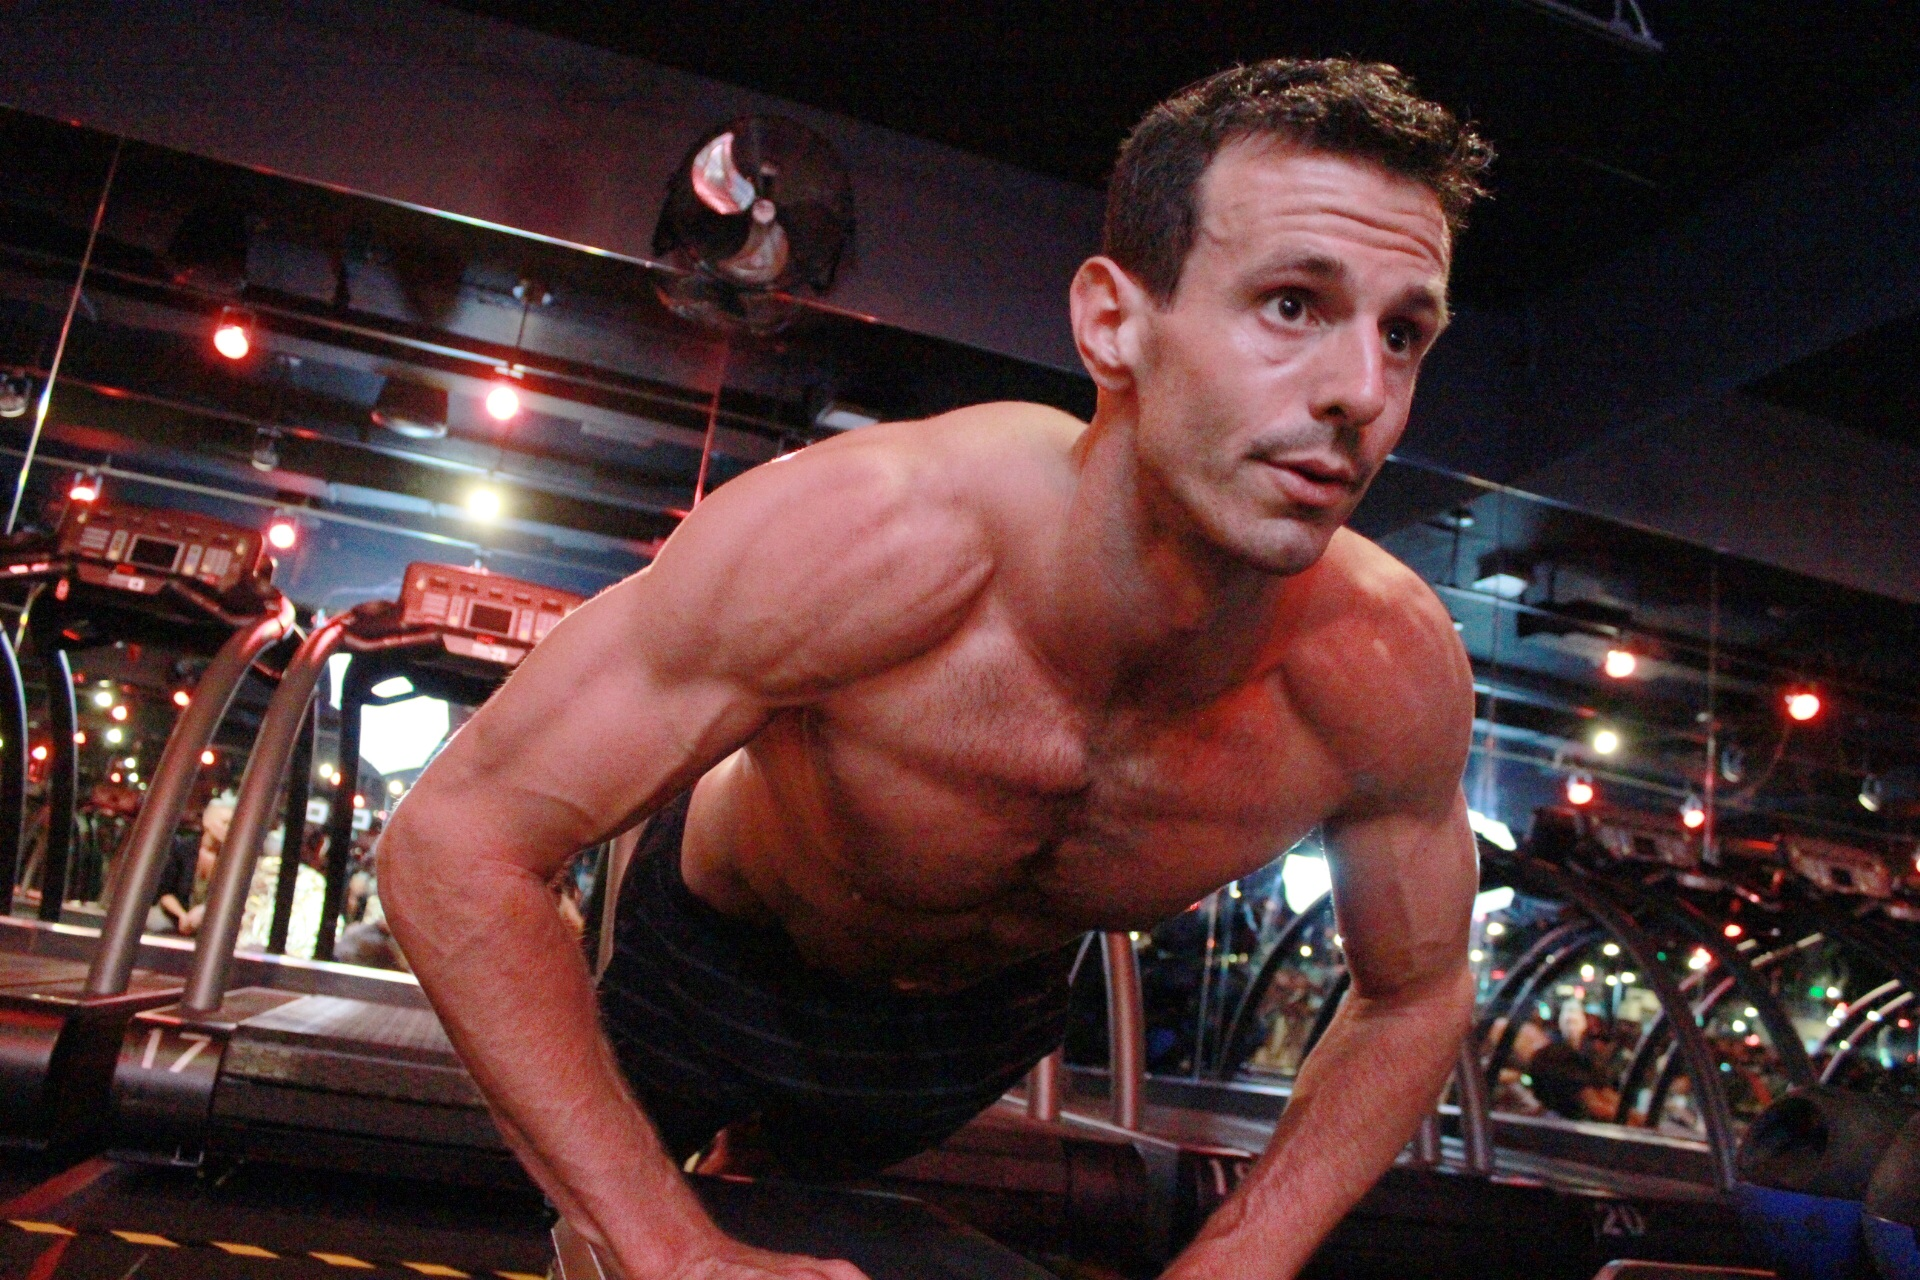 """Chris Reid will be leading the Thanksgiving troops at Barry's Bootcamp. Photo by <a href=""""http://arlenewatson.tumblr.com"""">Arlene Watson</a> for Racked"""